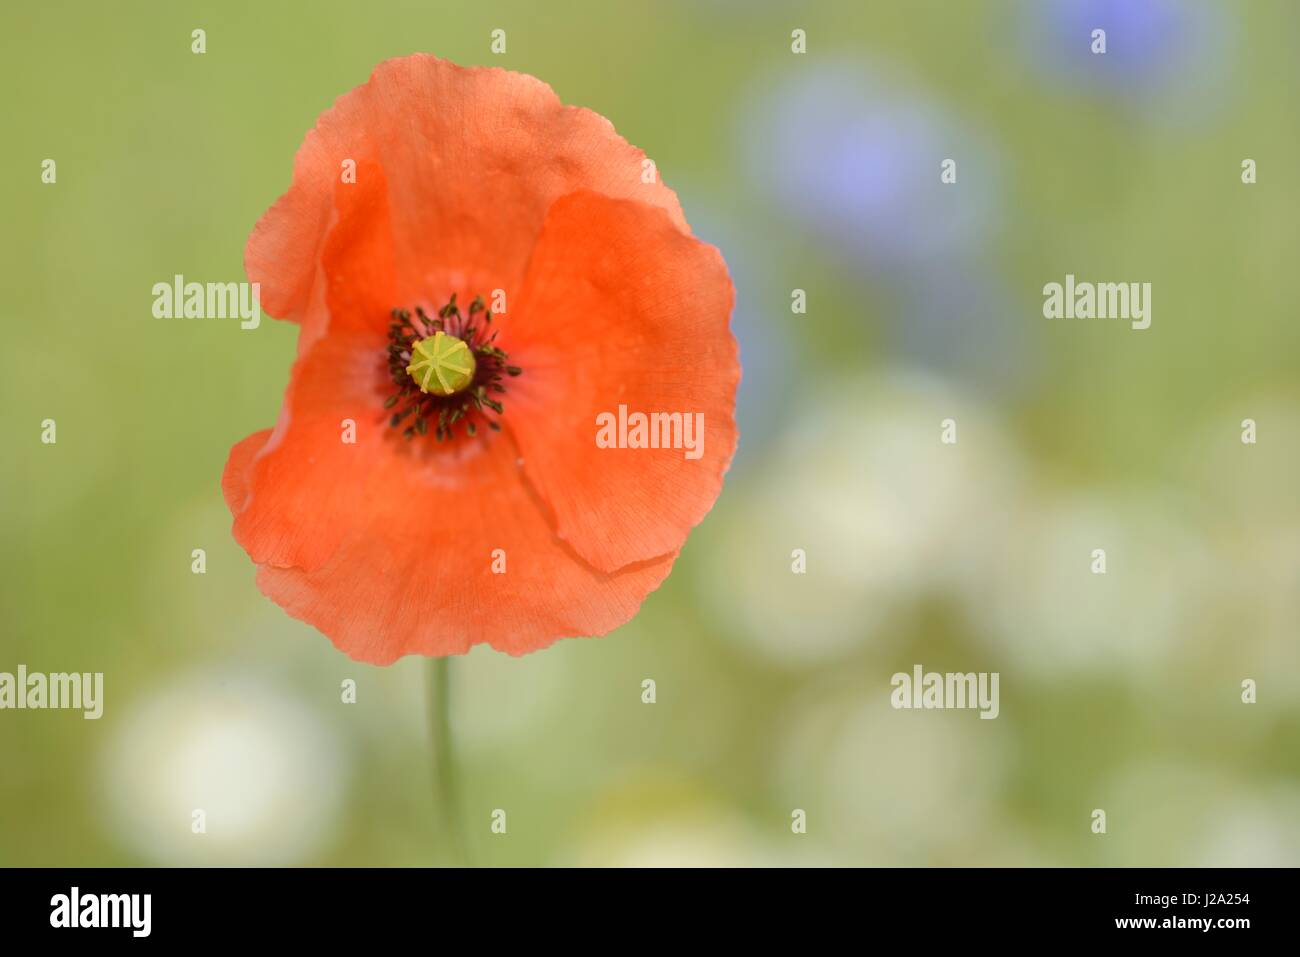 Flowering Long-headed Poppy in wheat field - Stock Image